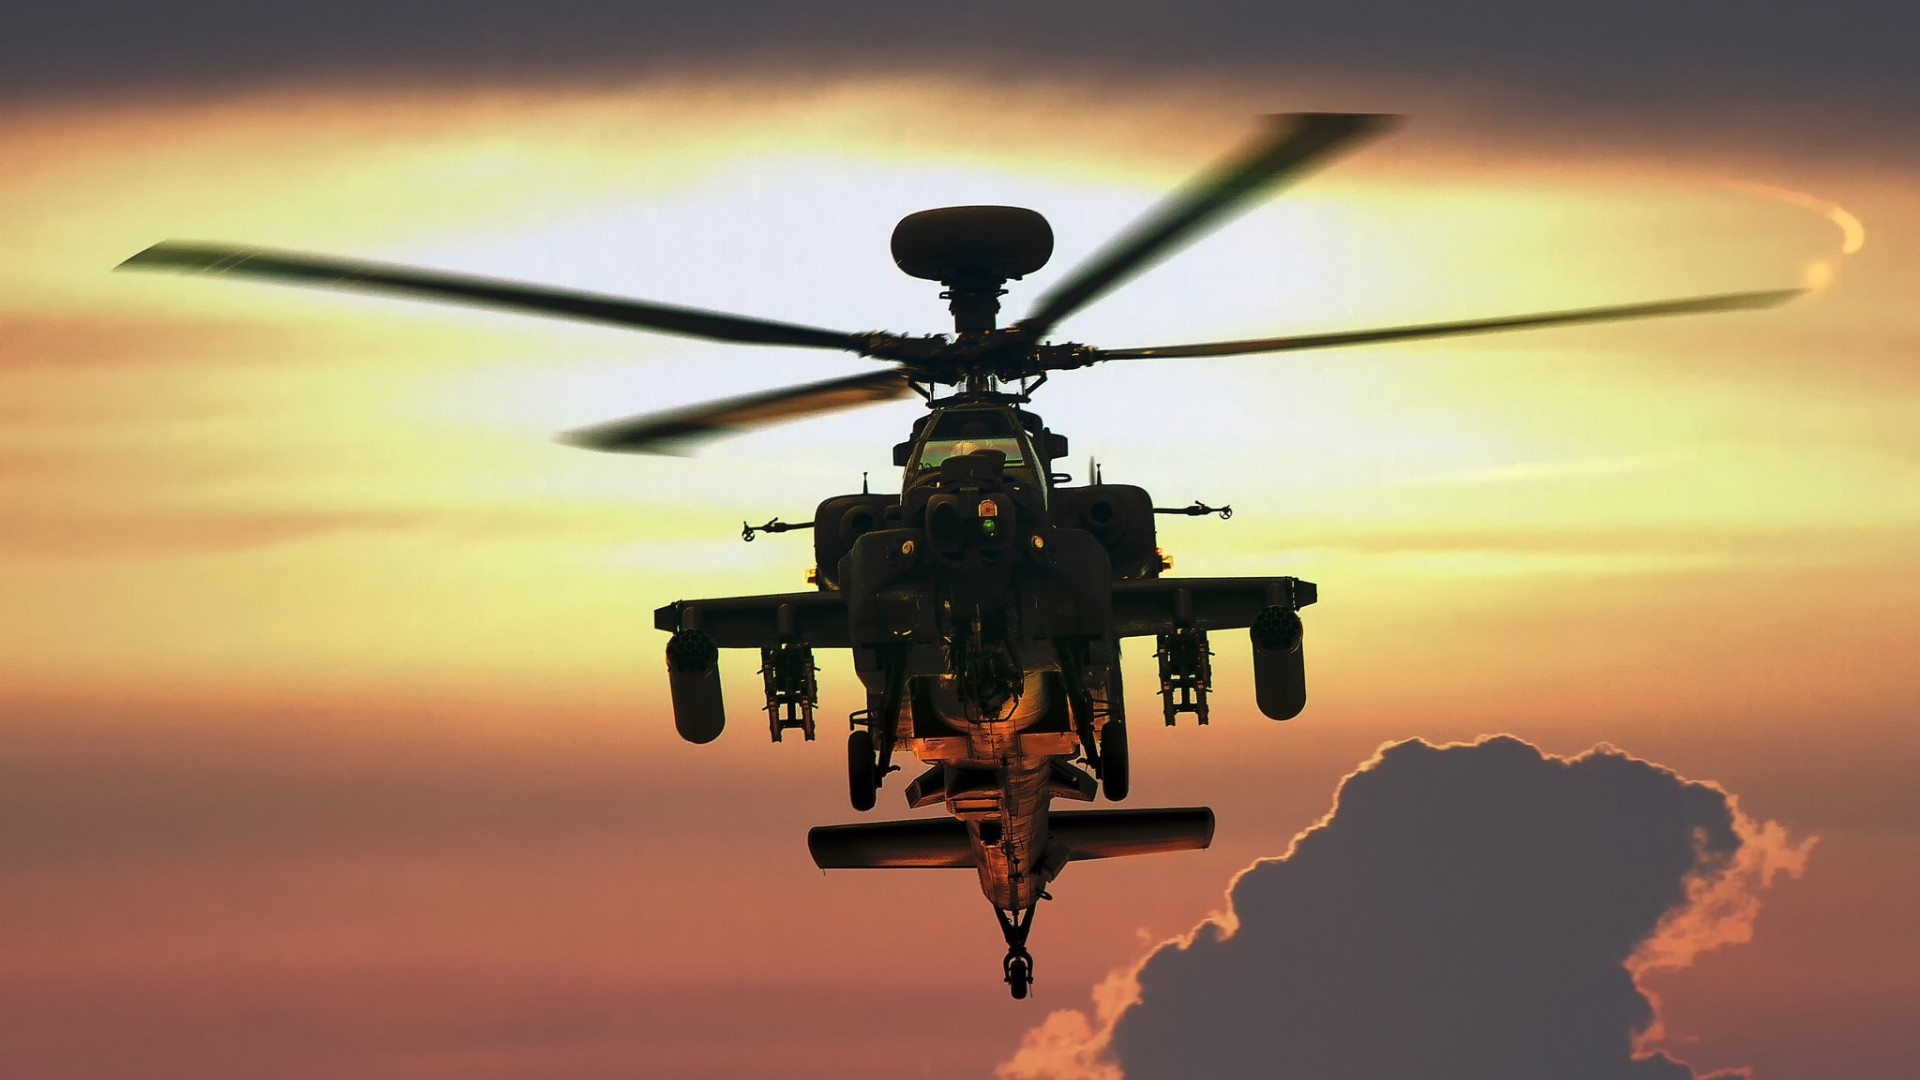 Black Hawk Helicopter Wallpapers Hd Sunset Ah 64 Apache Helicopter Wallpapers 1920x1080 273287